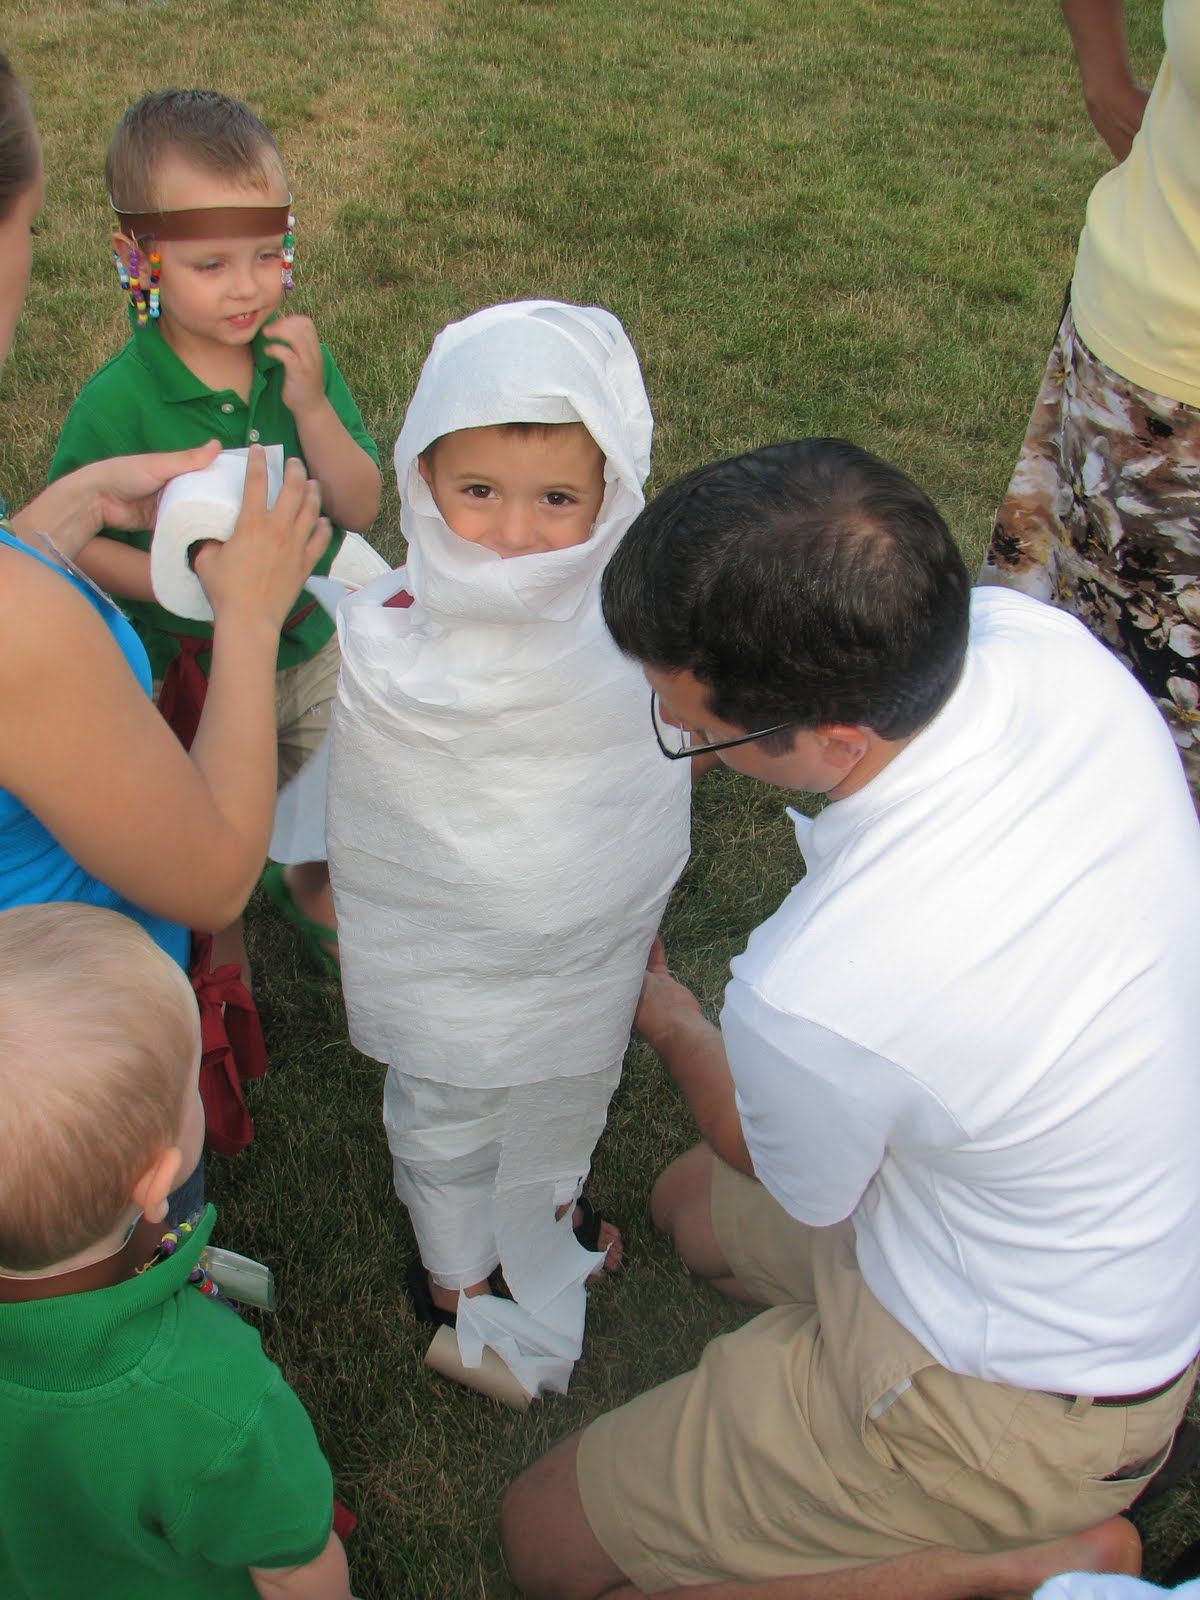 Halloween Games For Kids:- Mummy Wrap | Halloween Games For Kids ...